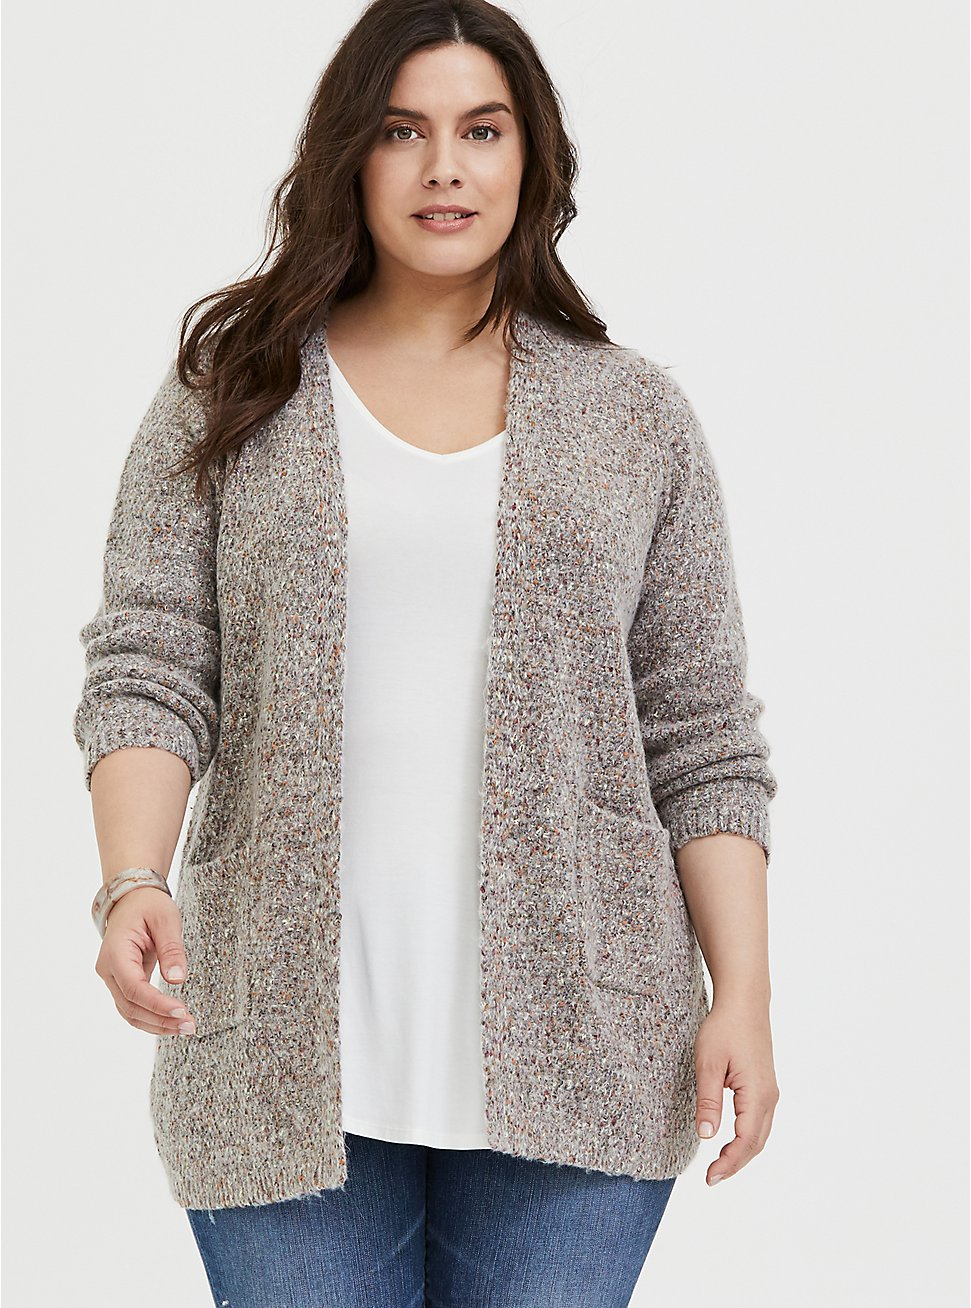 Plus Size Grey & Colorful Marled Woolen Fuzzy Knit Cardigan, , hi-res